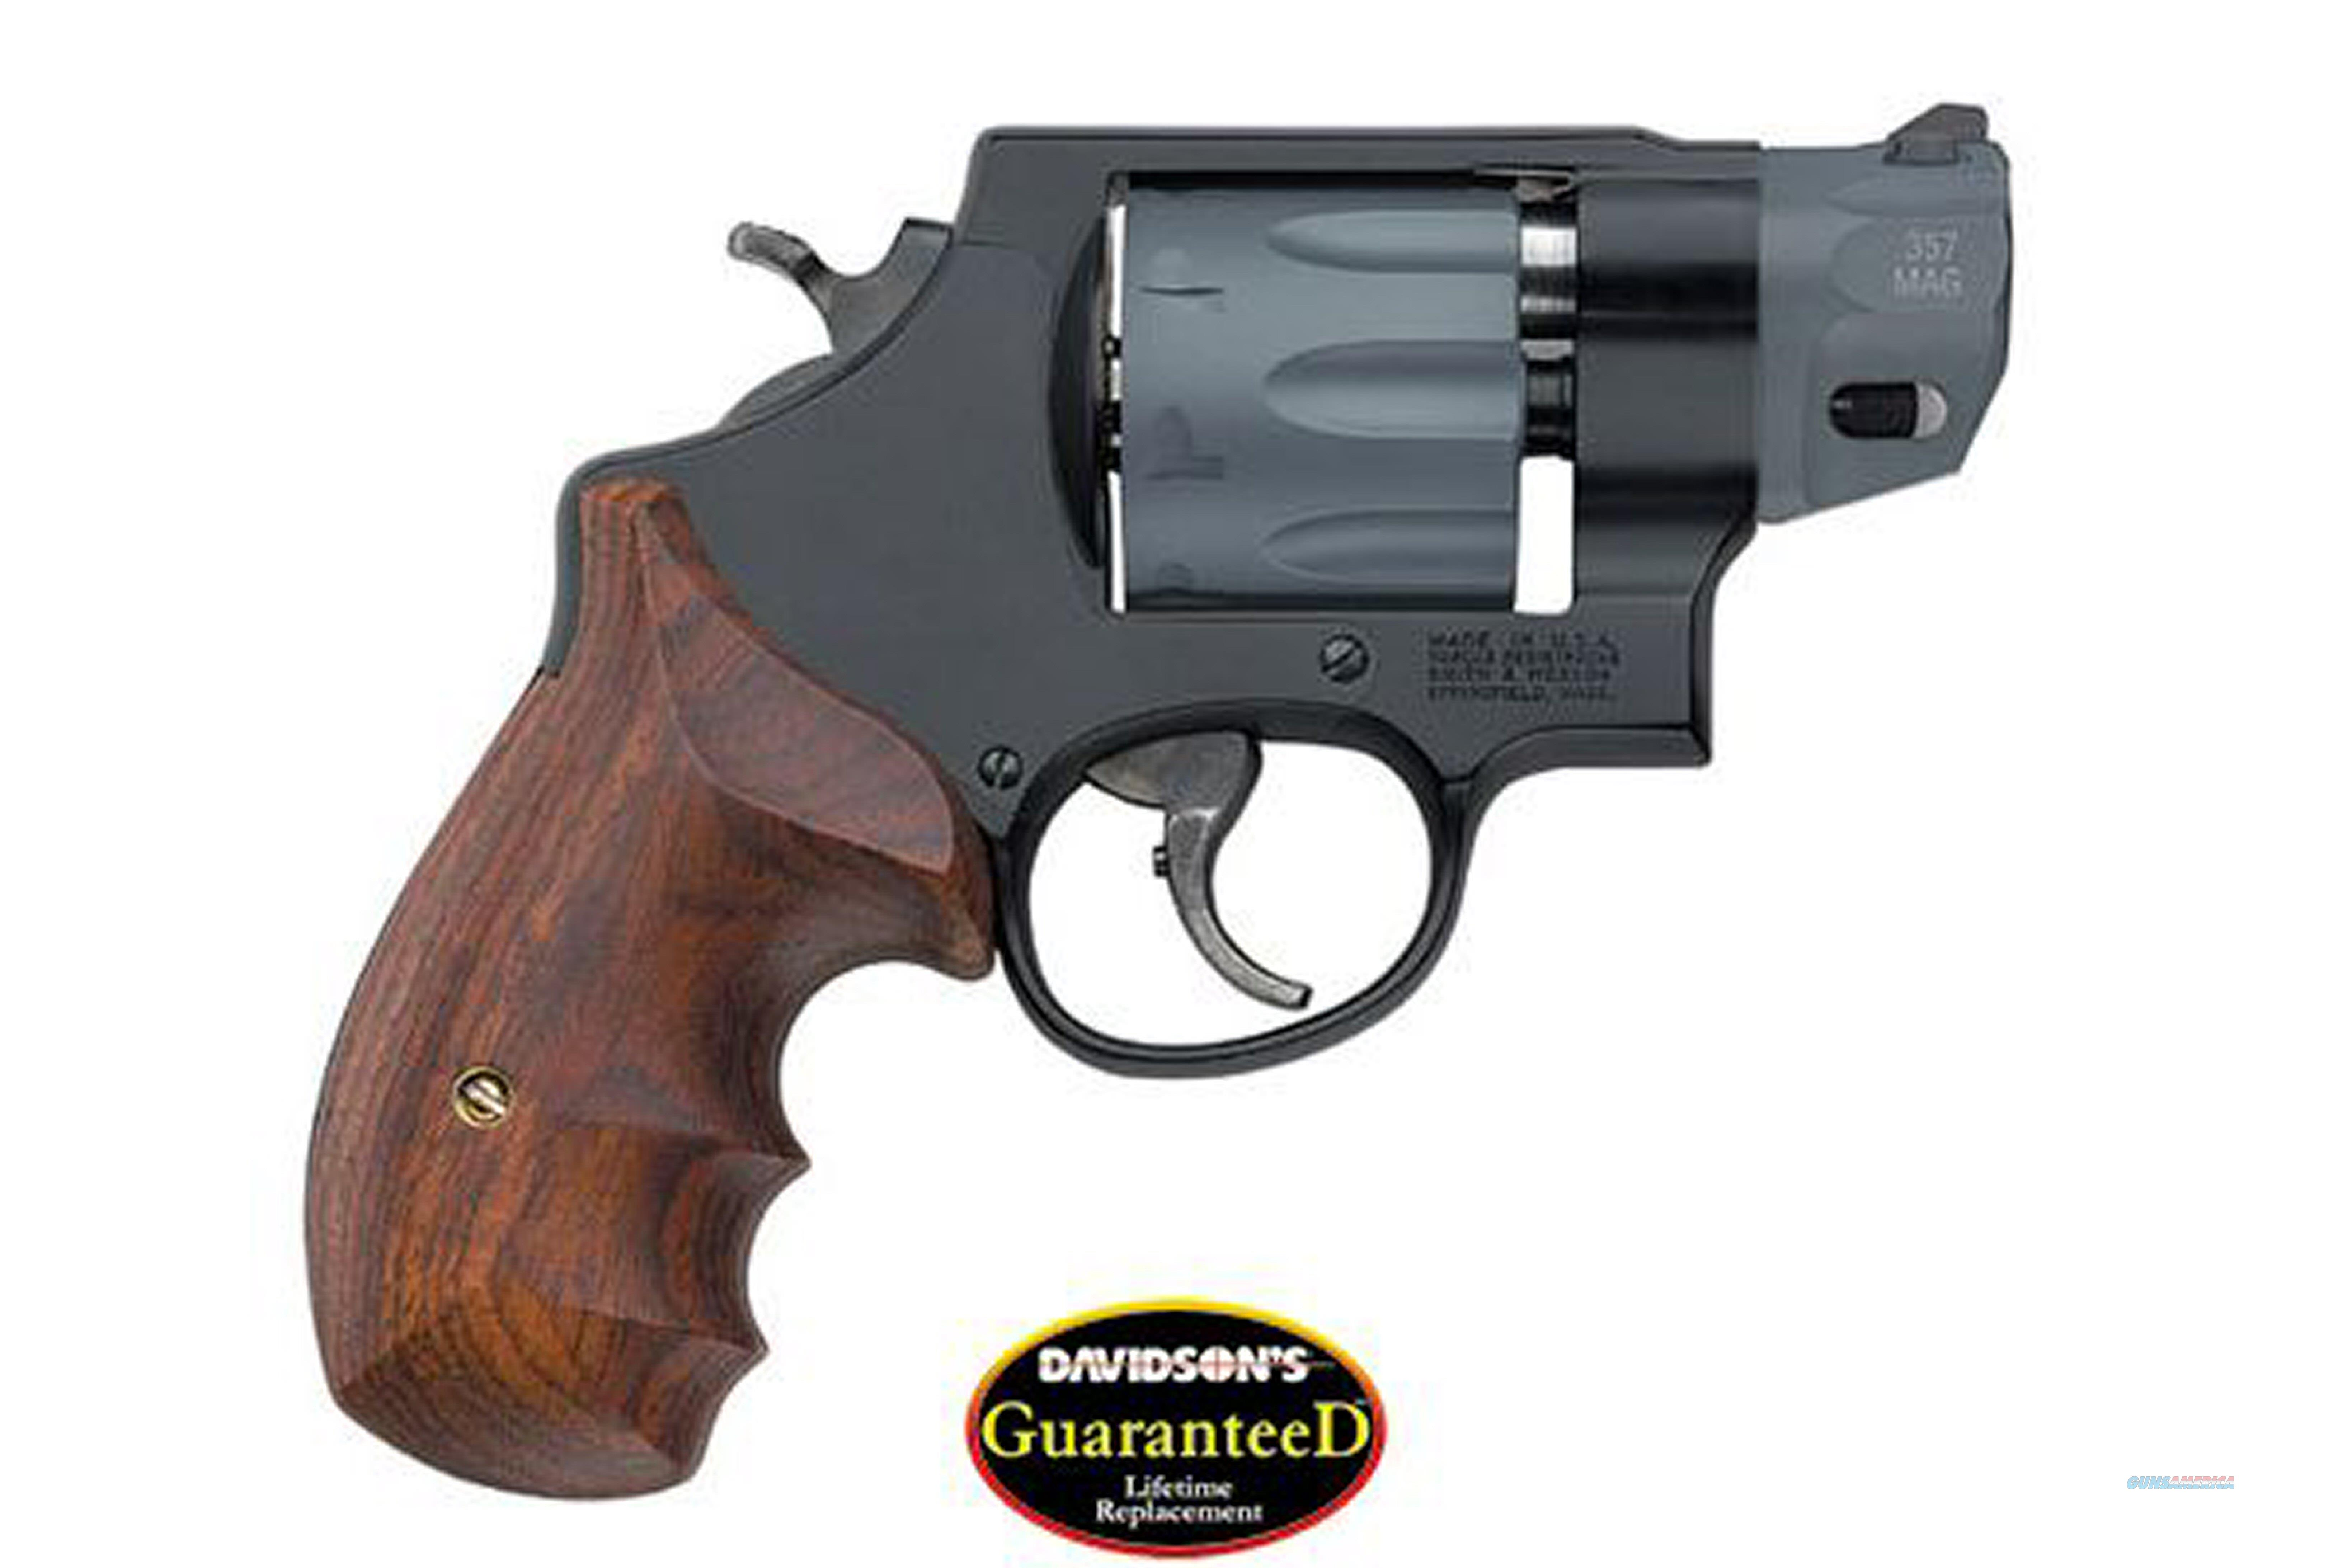 S&W M327 PC 357 DA REV 2B 8RD Carry Performance Center 2 DAY SALE 1/20/16  Guns > Pistols > Smith & Wesson Revolvers > Performance Center